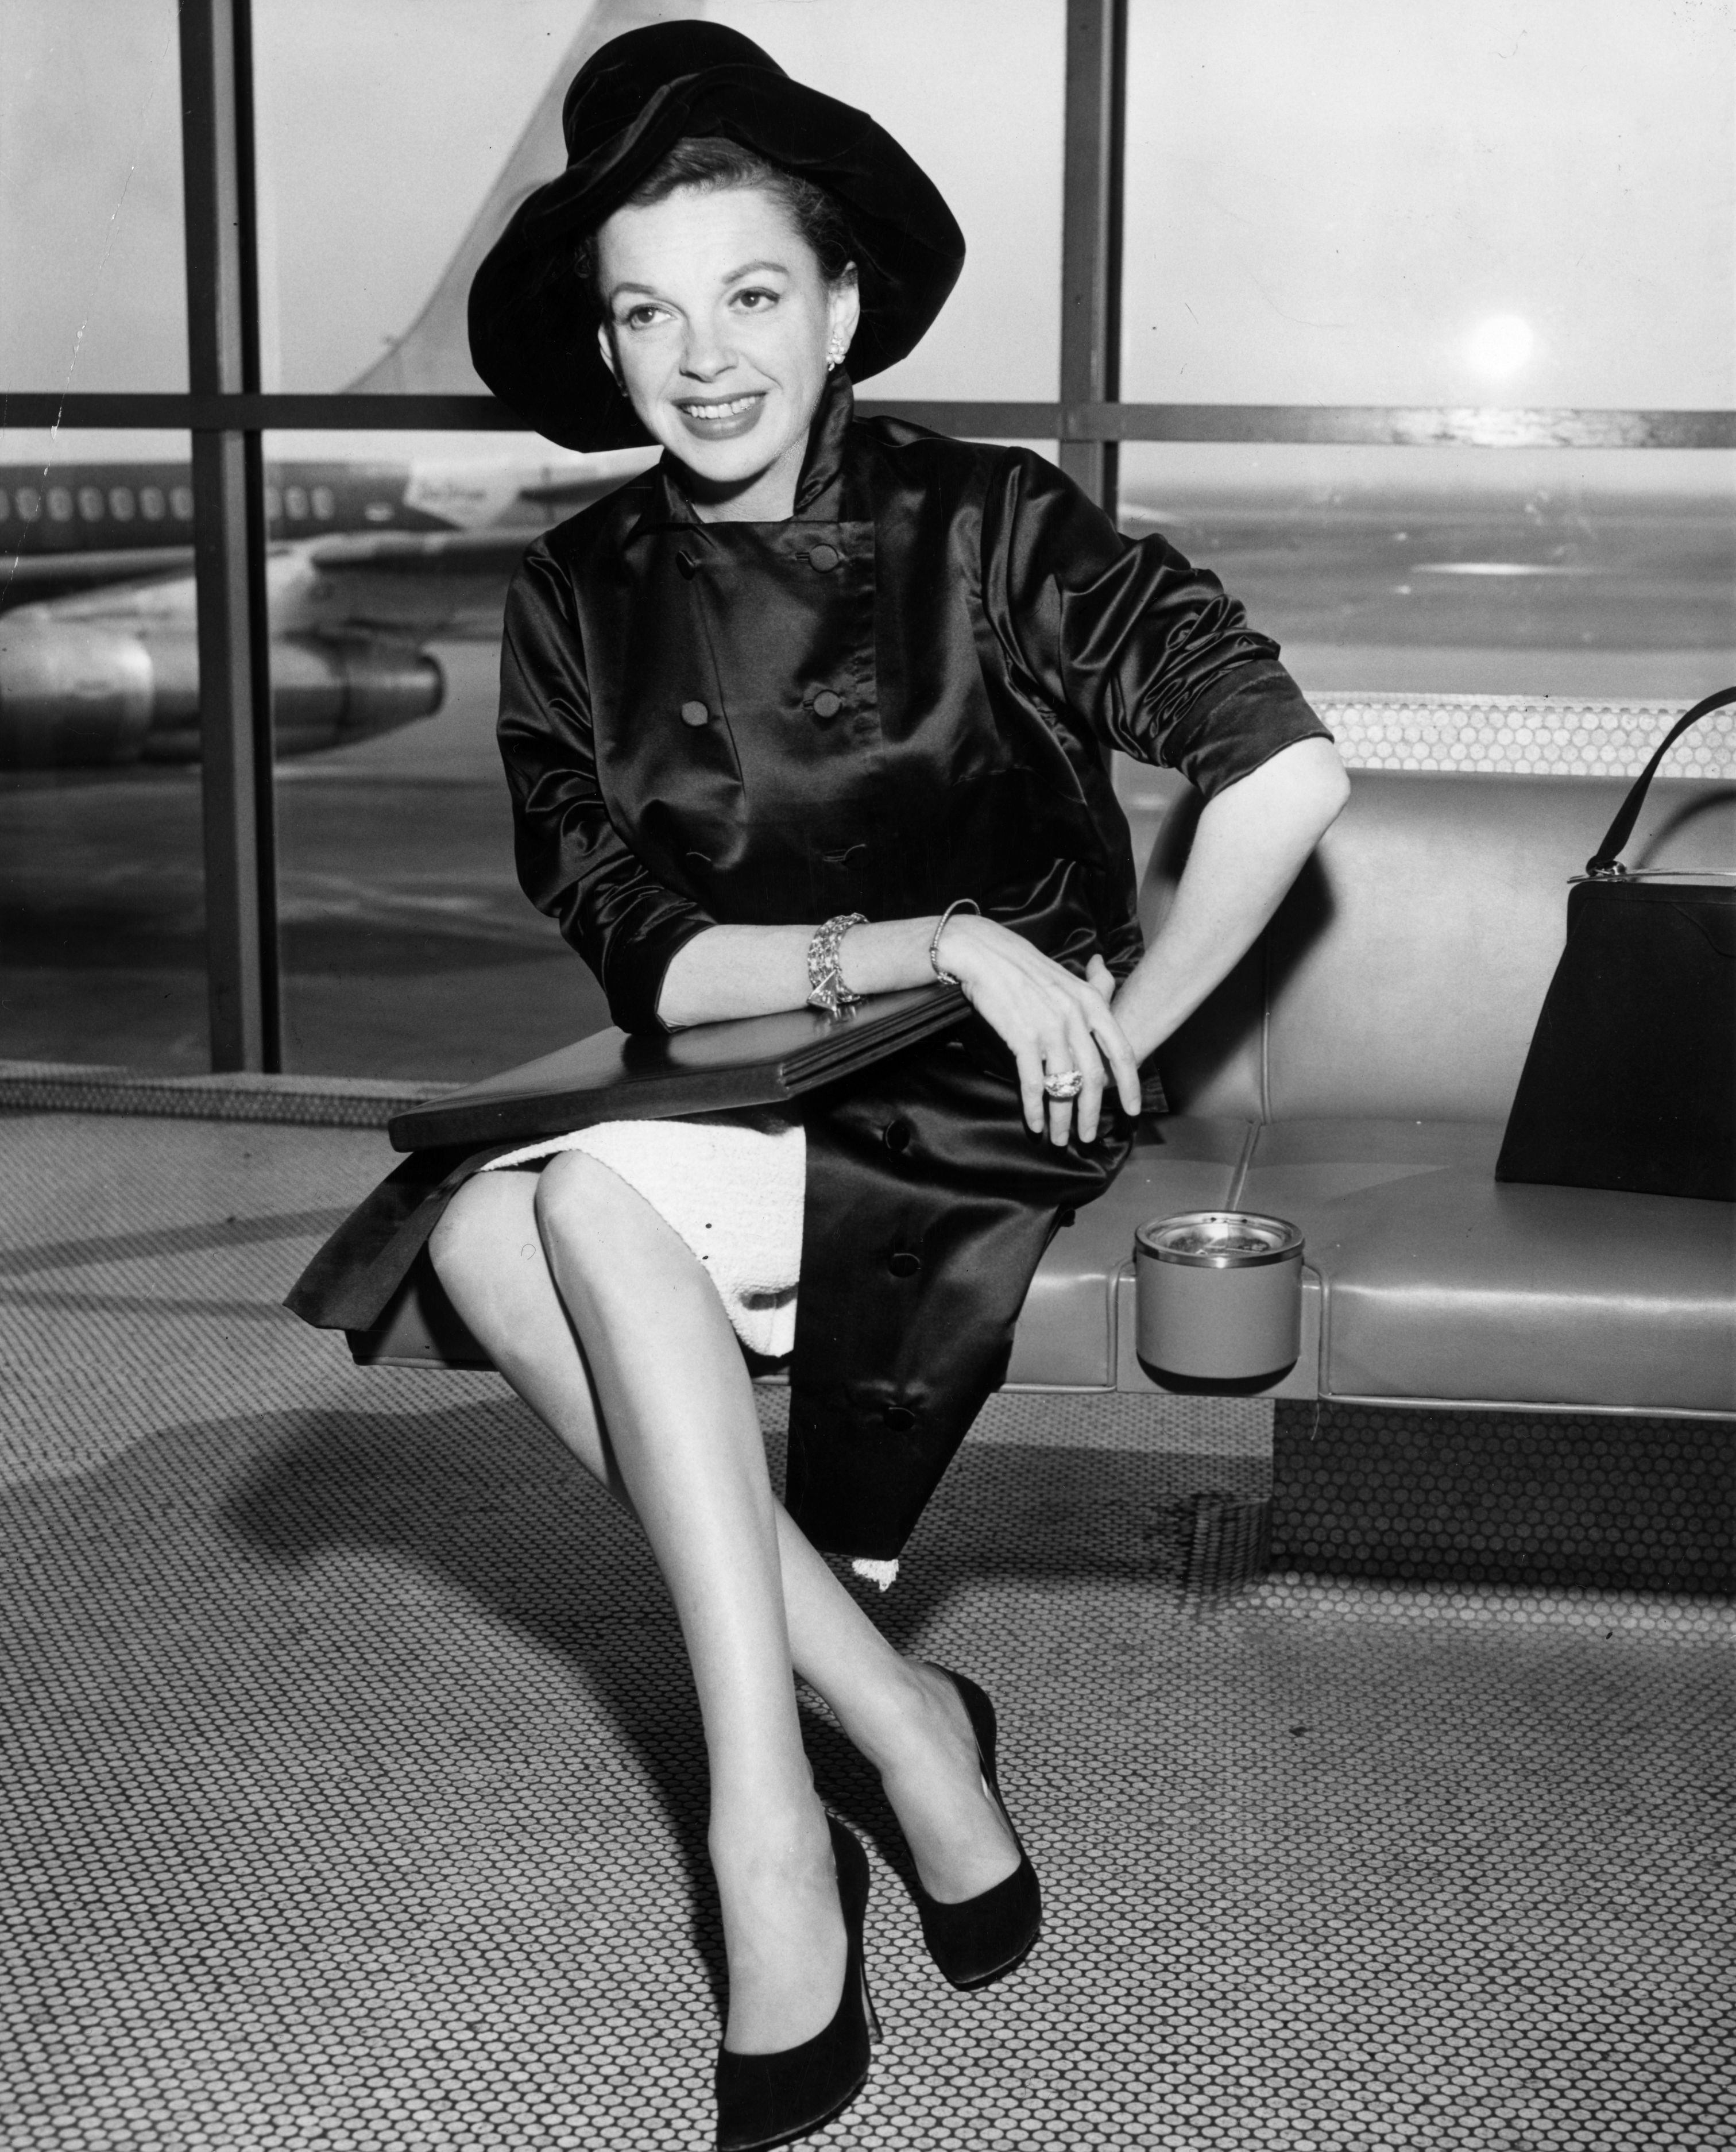 Singer and film star Judy Garland at an airport on January 01, 1955   Photo: Getty Images